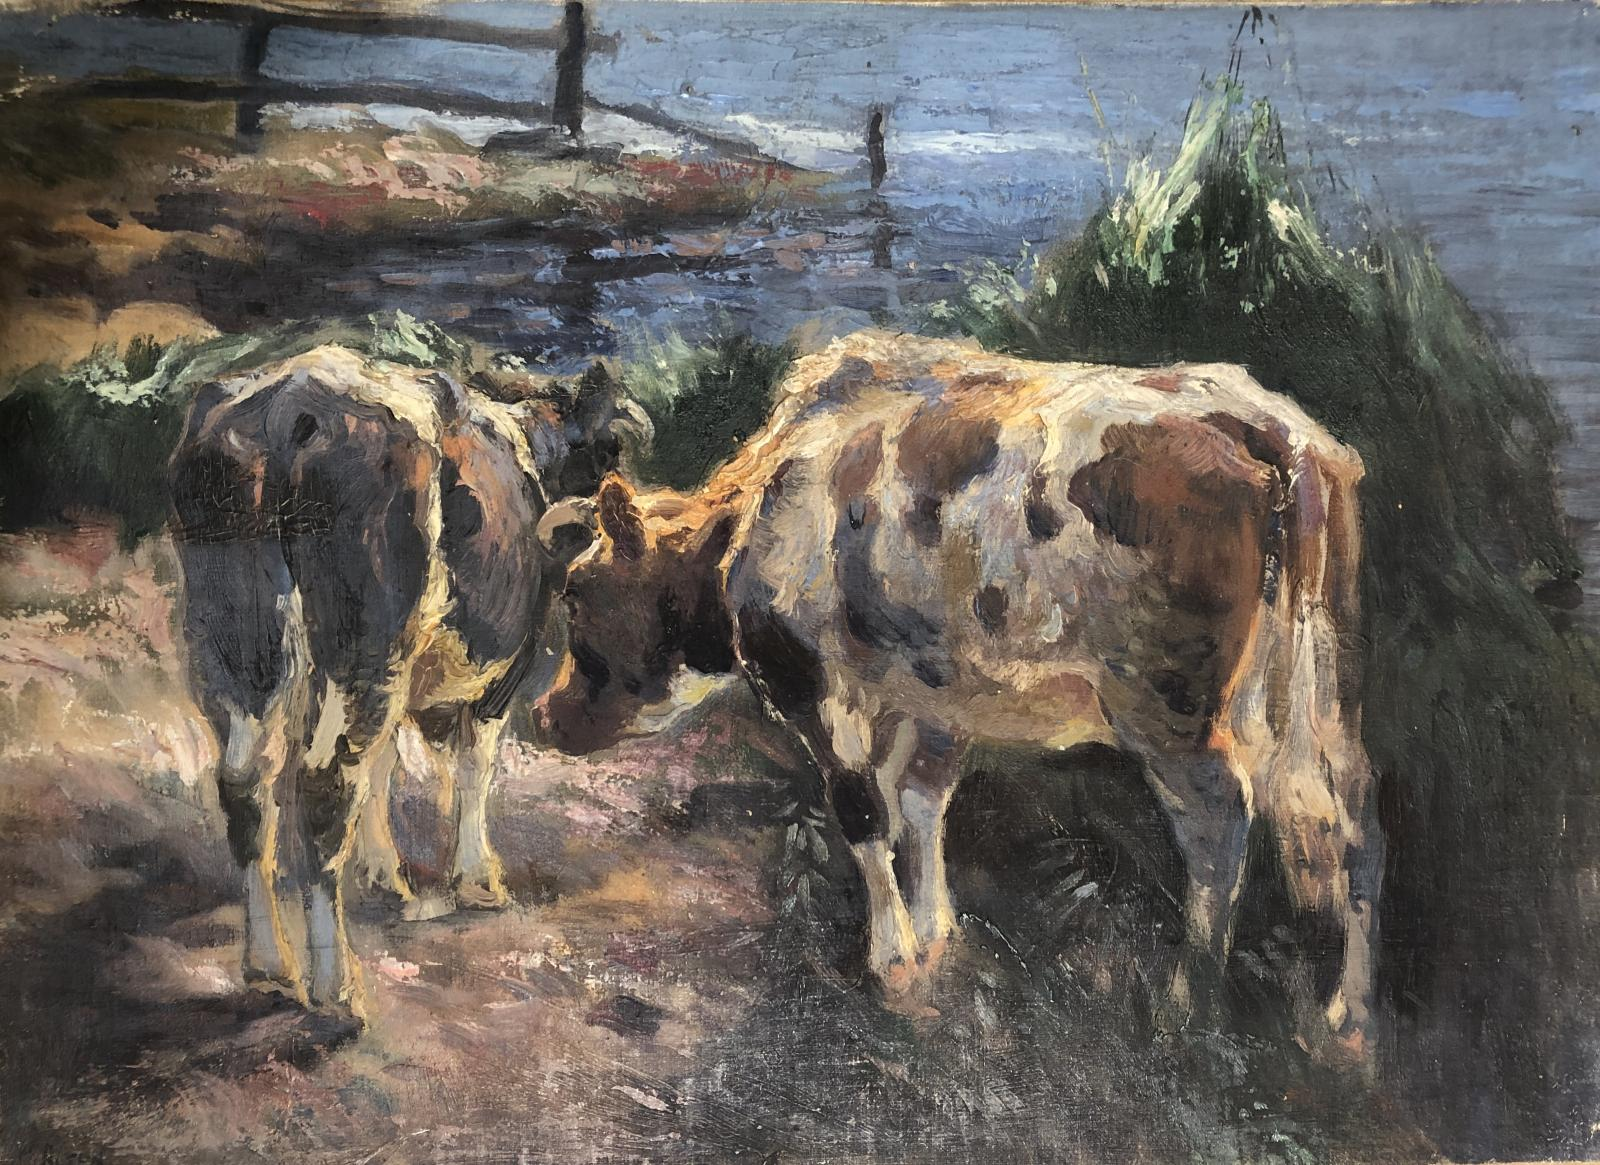 Oil painting on canvas and board of two cows, one from the rear, one from the side.